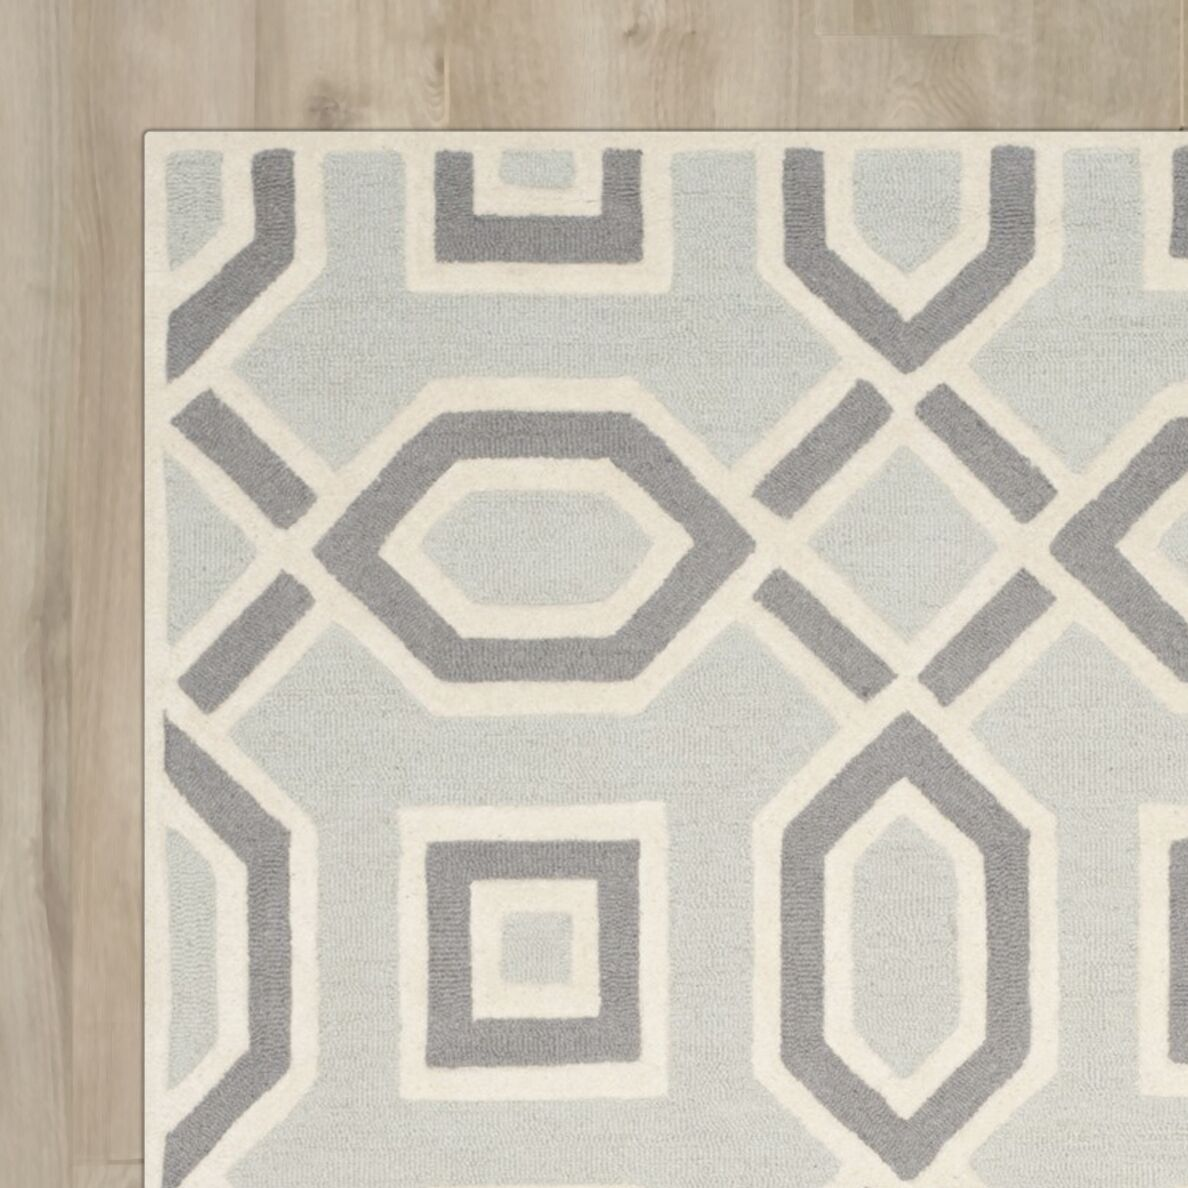 Arthur Hand-Tufted Grey / Ivory Indoor Area Rug Rug Size: Runner 2'6